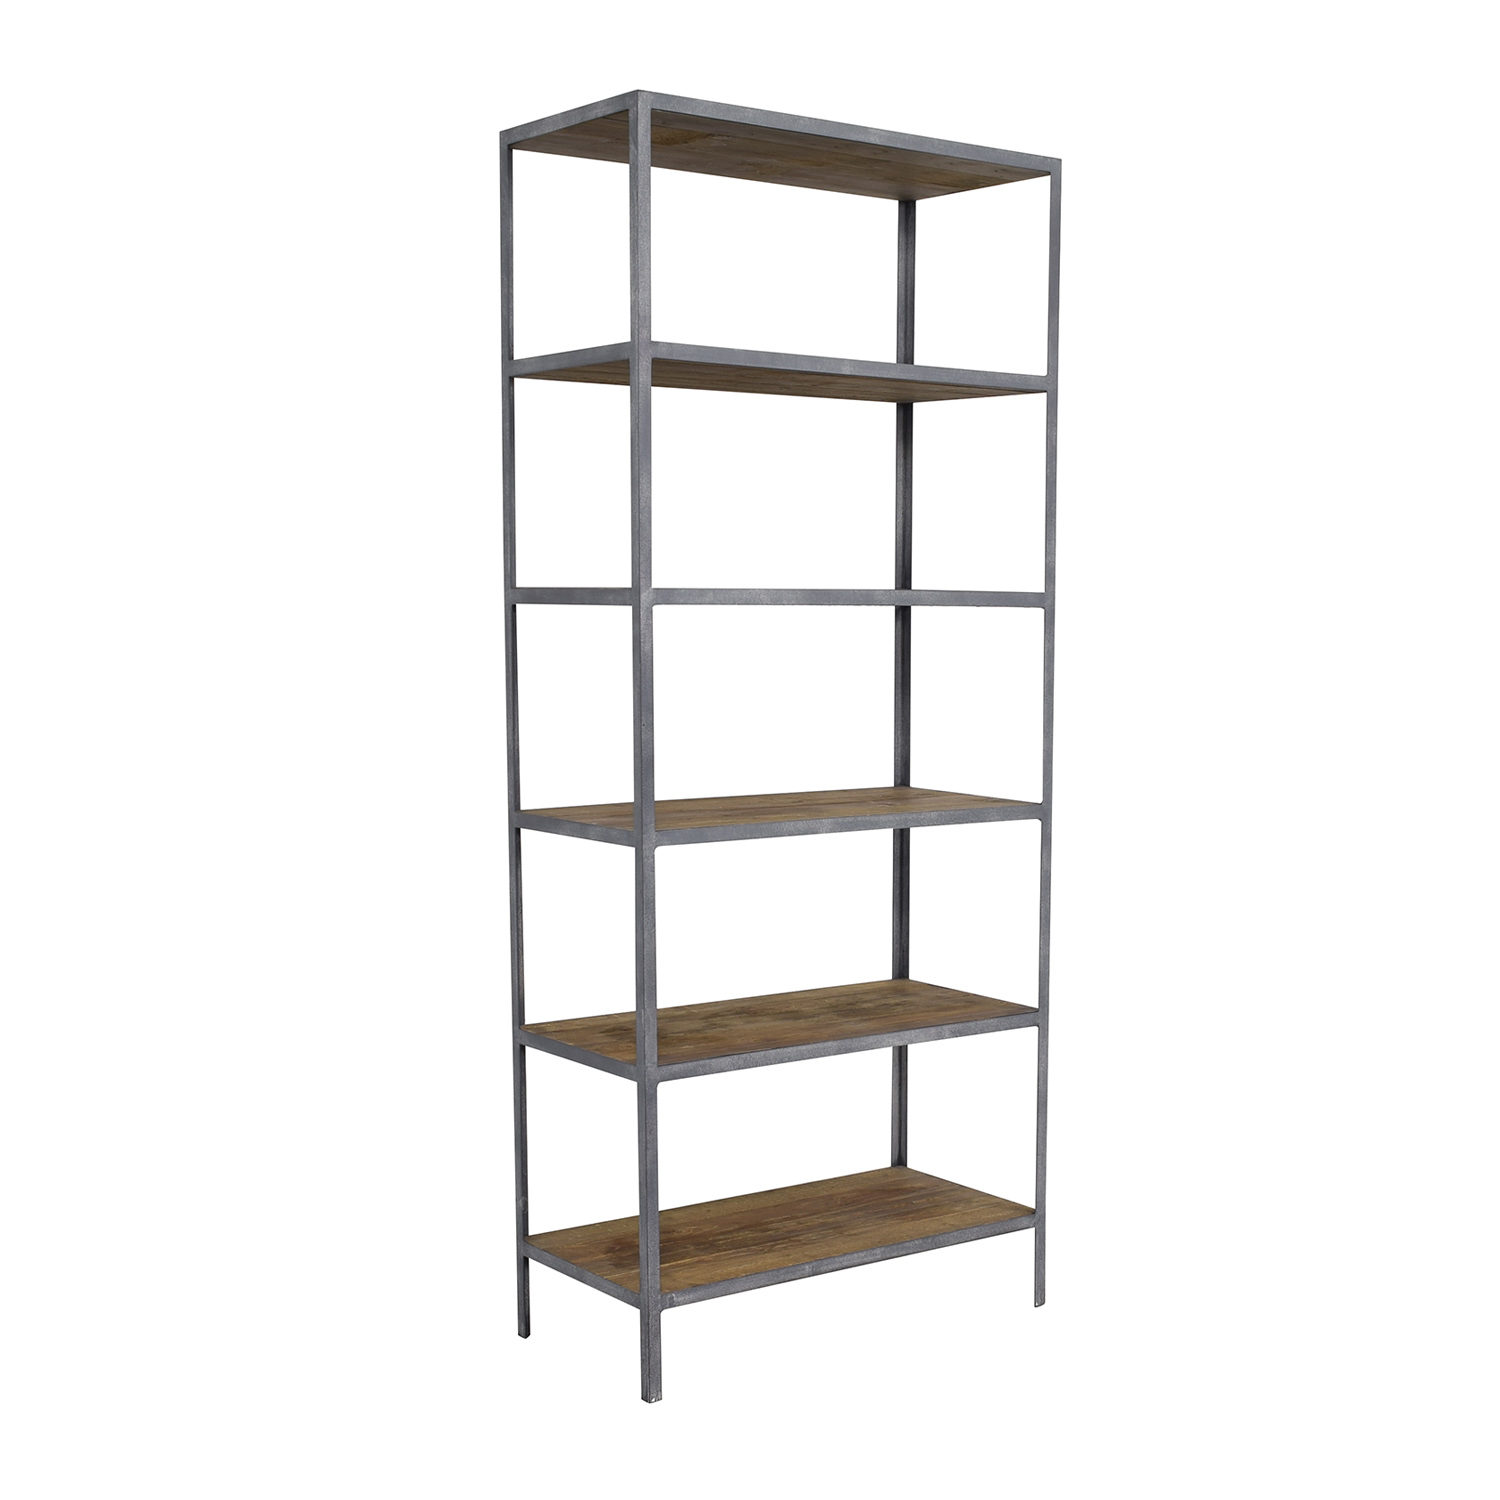 Restoration Hardware Restoration Hardware Vintage Industrial Single Shelving for sale